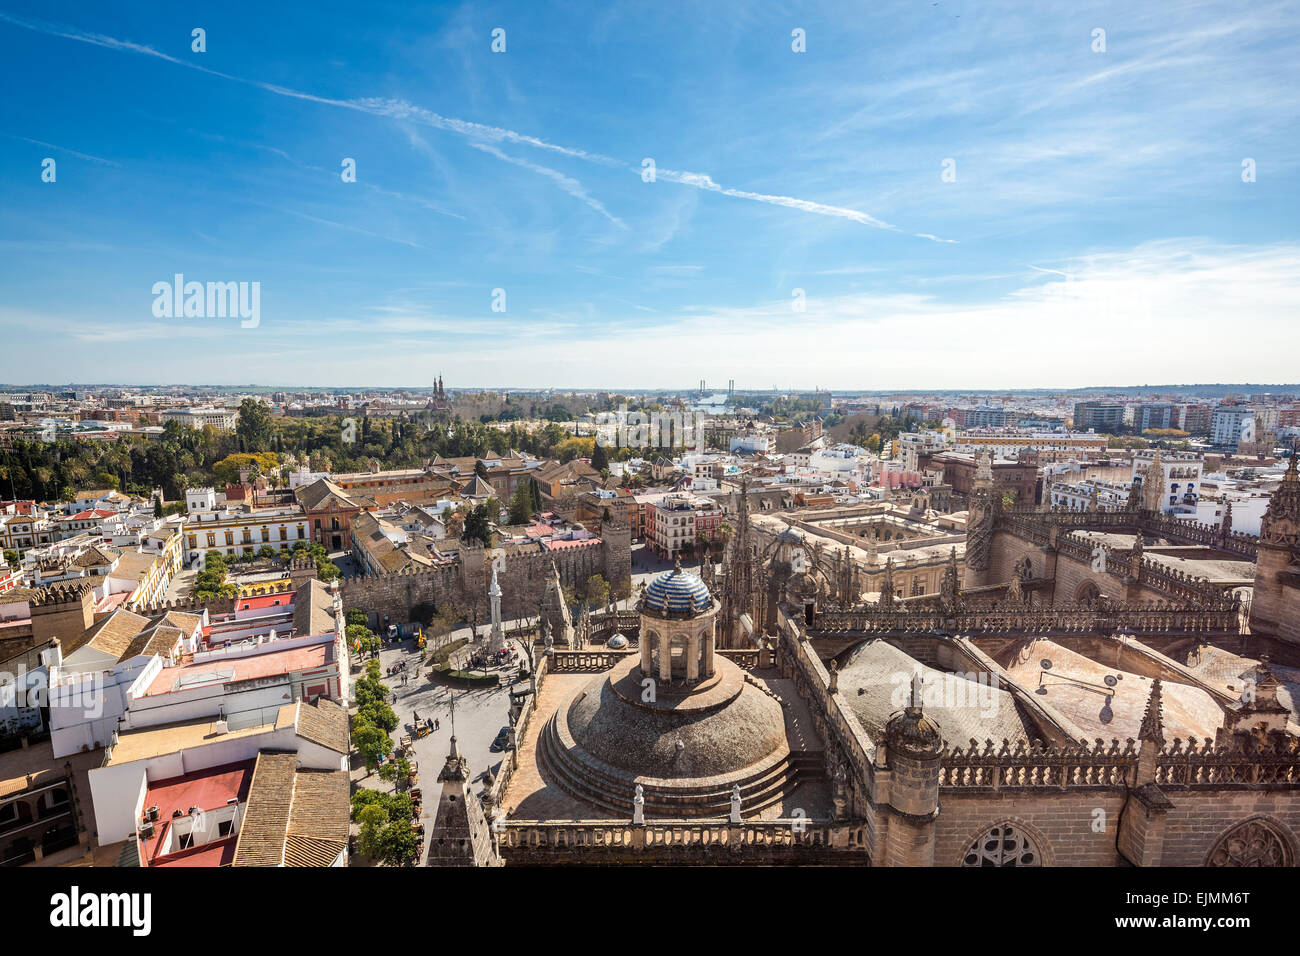 Seville city overlook from Giralda tower. Scenic Seville skyline view towards the south. Sevilla Spain. - Stock Image